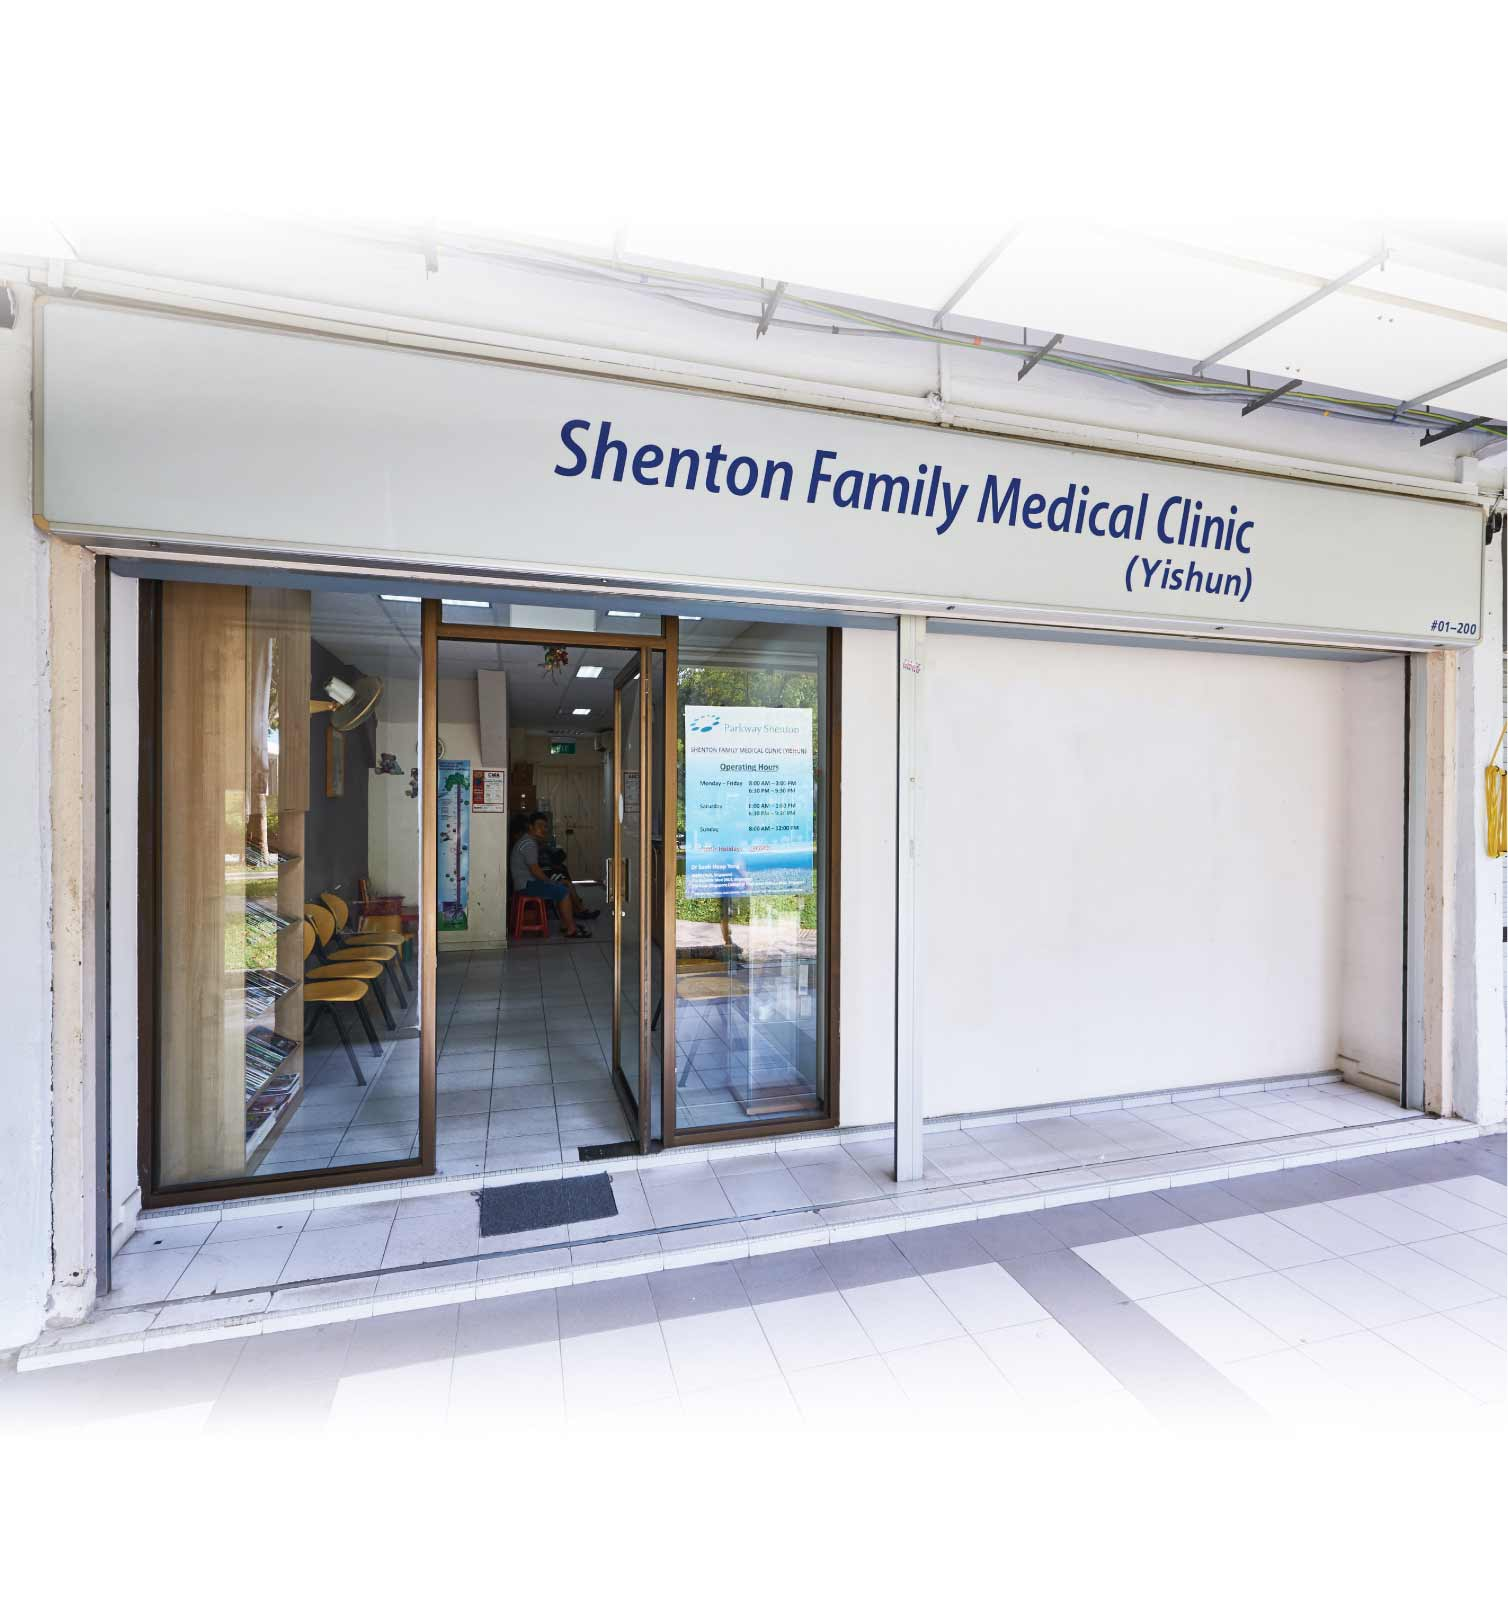 Yishun - Shenton Family Medical Clinic